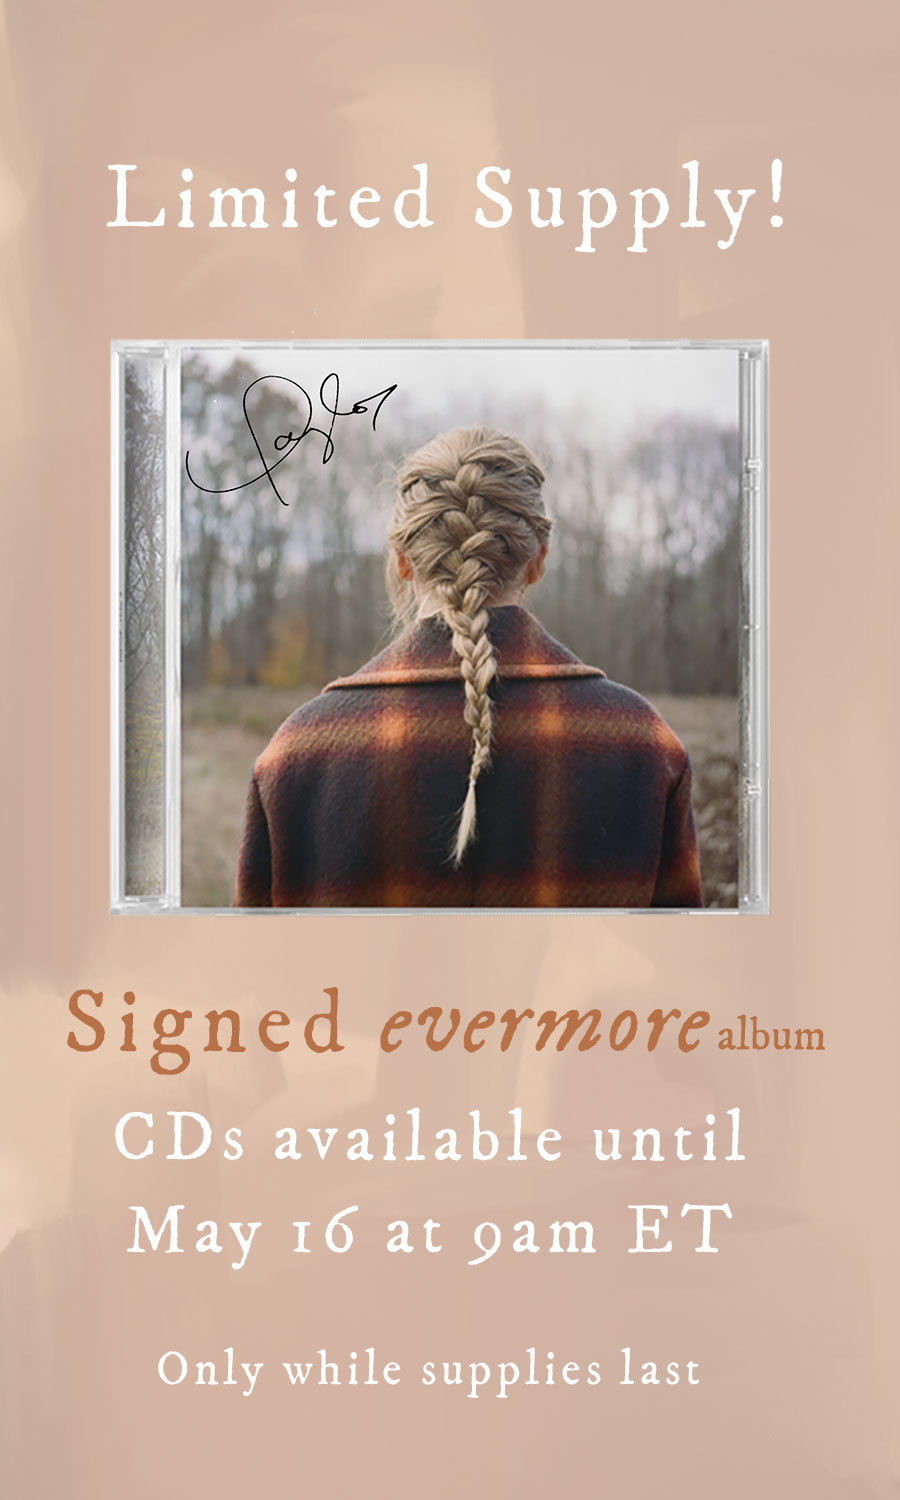 Limited Supply! Signed evermore album CDs available until May 16 at 9am ET Only while supplies last